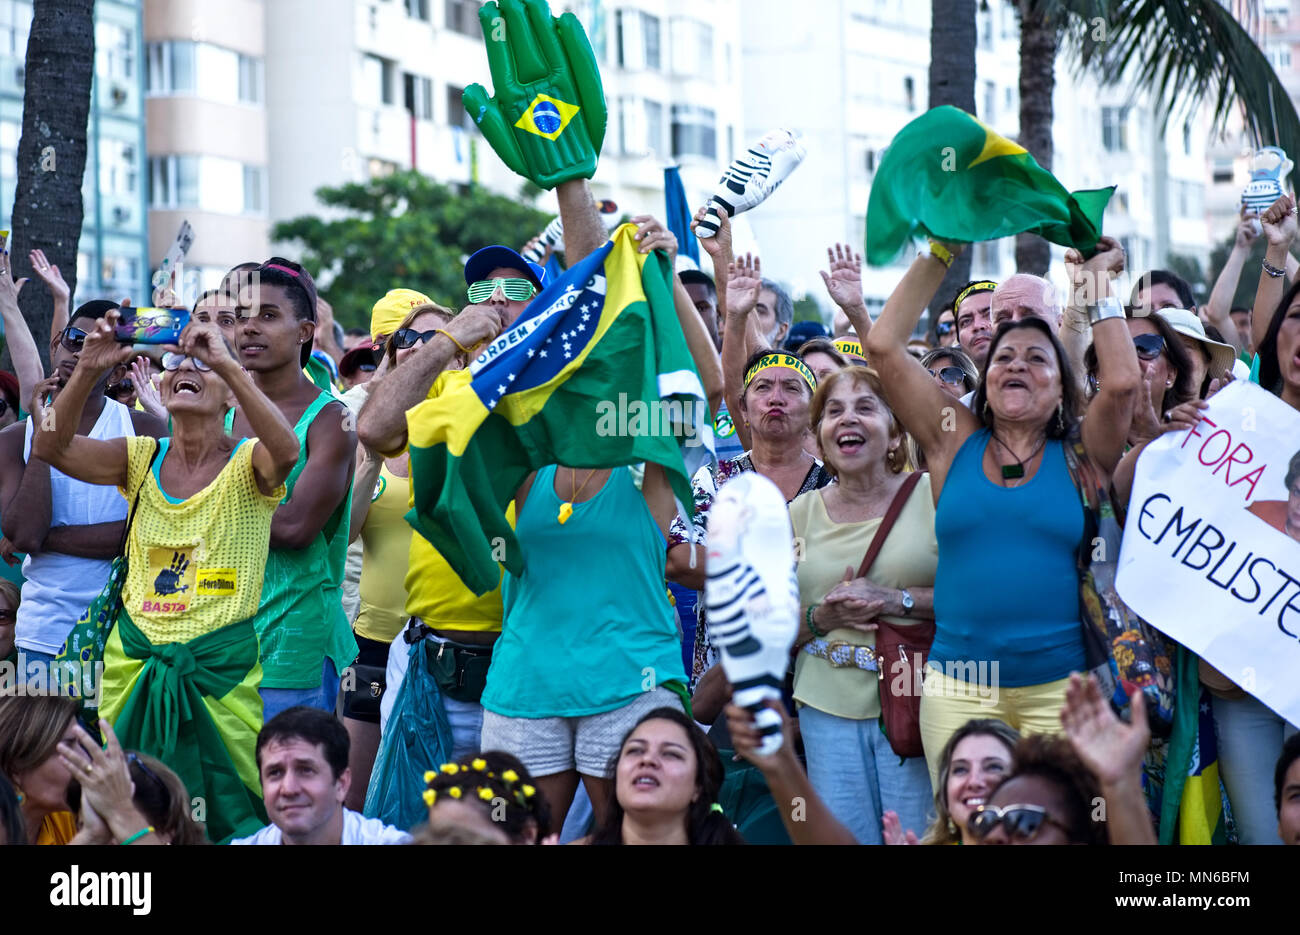 Brazil - April 17, 2016: Demonstrators take part in a protest demanding the impeachment of President Dilma and the arrest of former President Lula - Stock Image